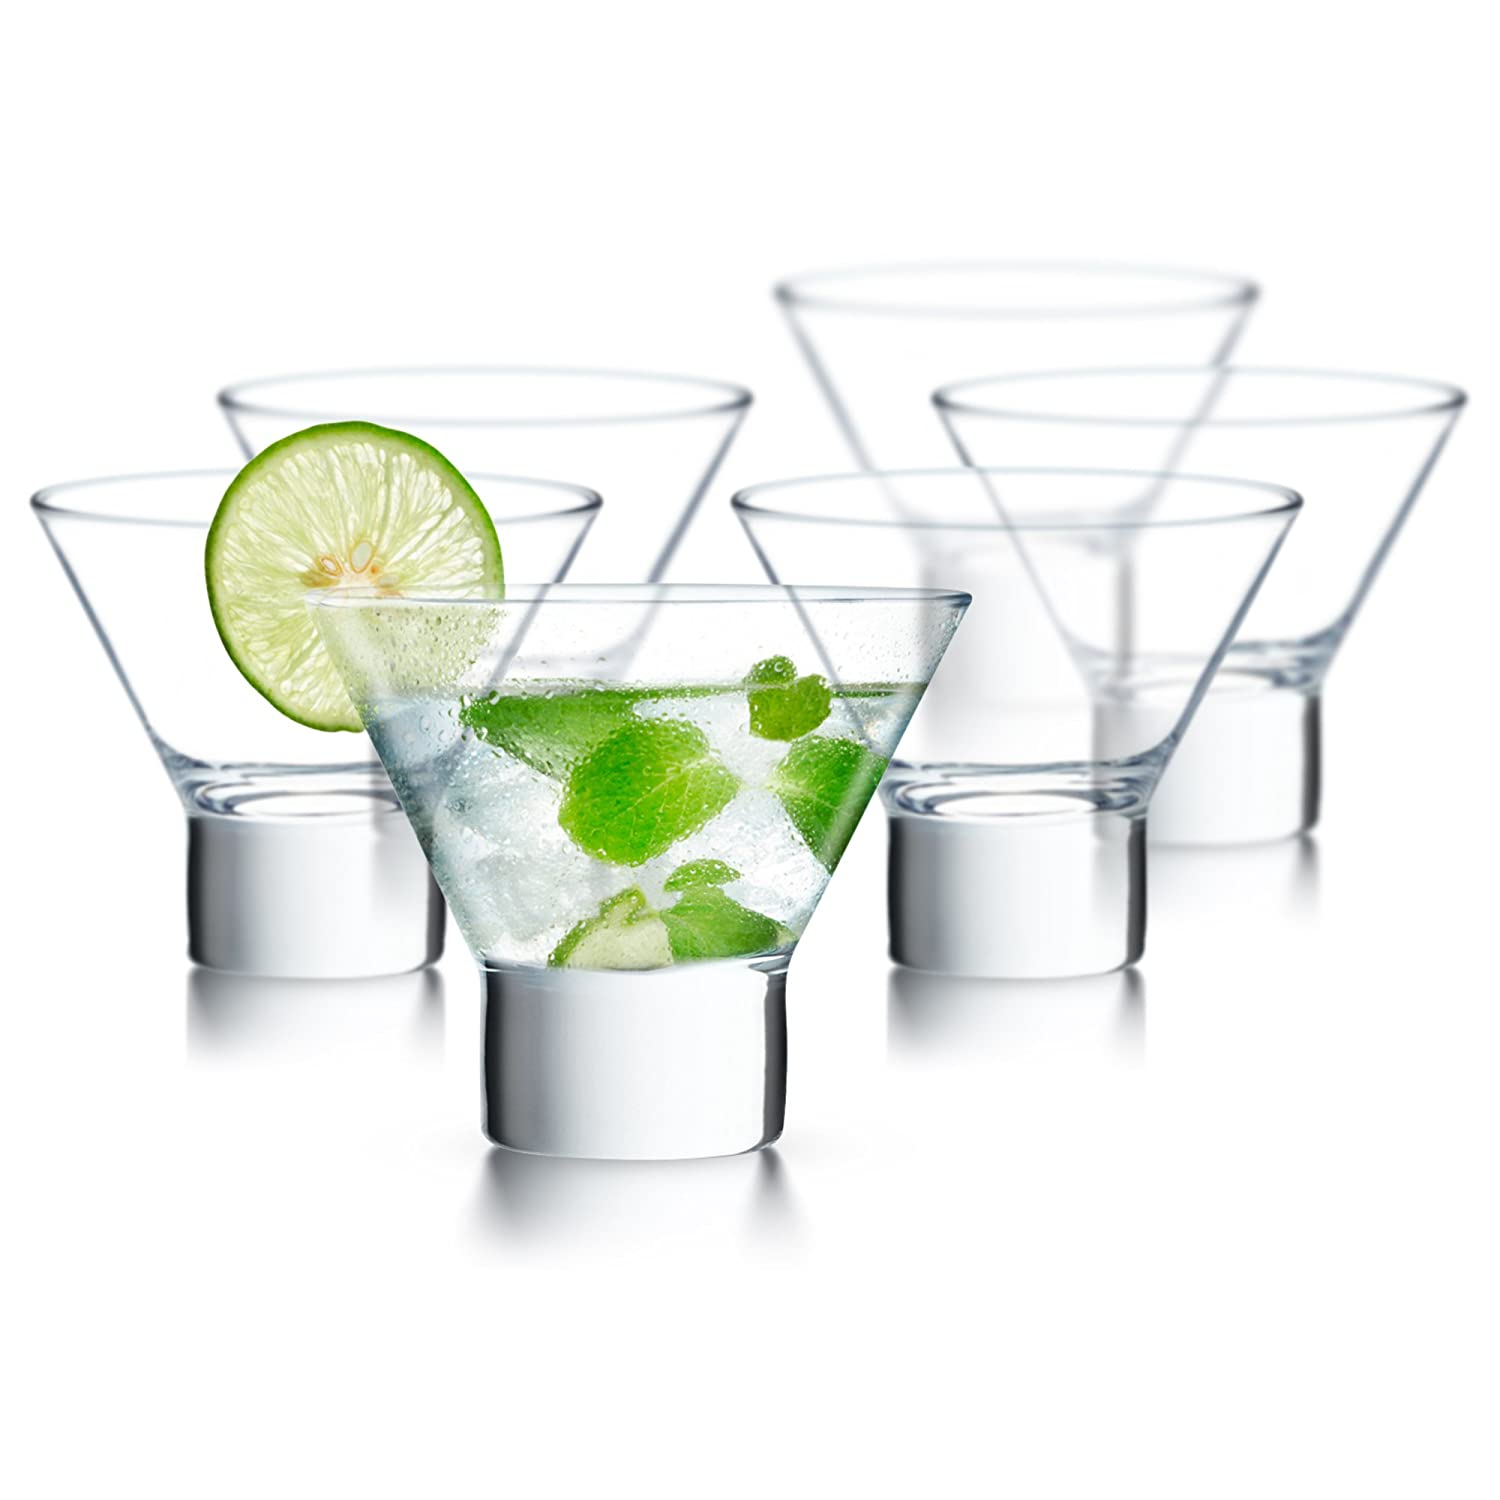 KooK Stemless Martini Cocktail Glass 8 Ounces, Set of 6 8000